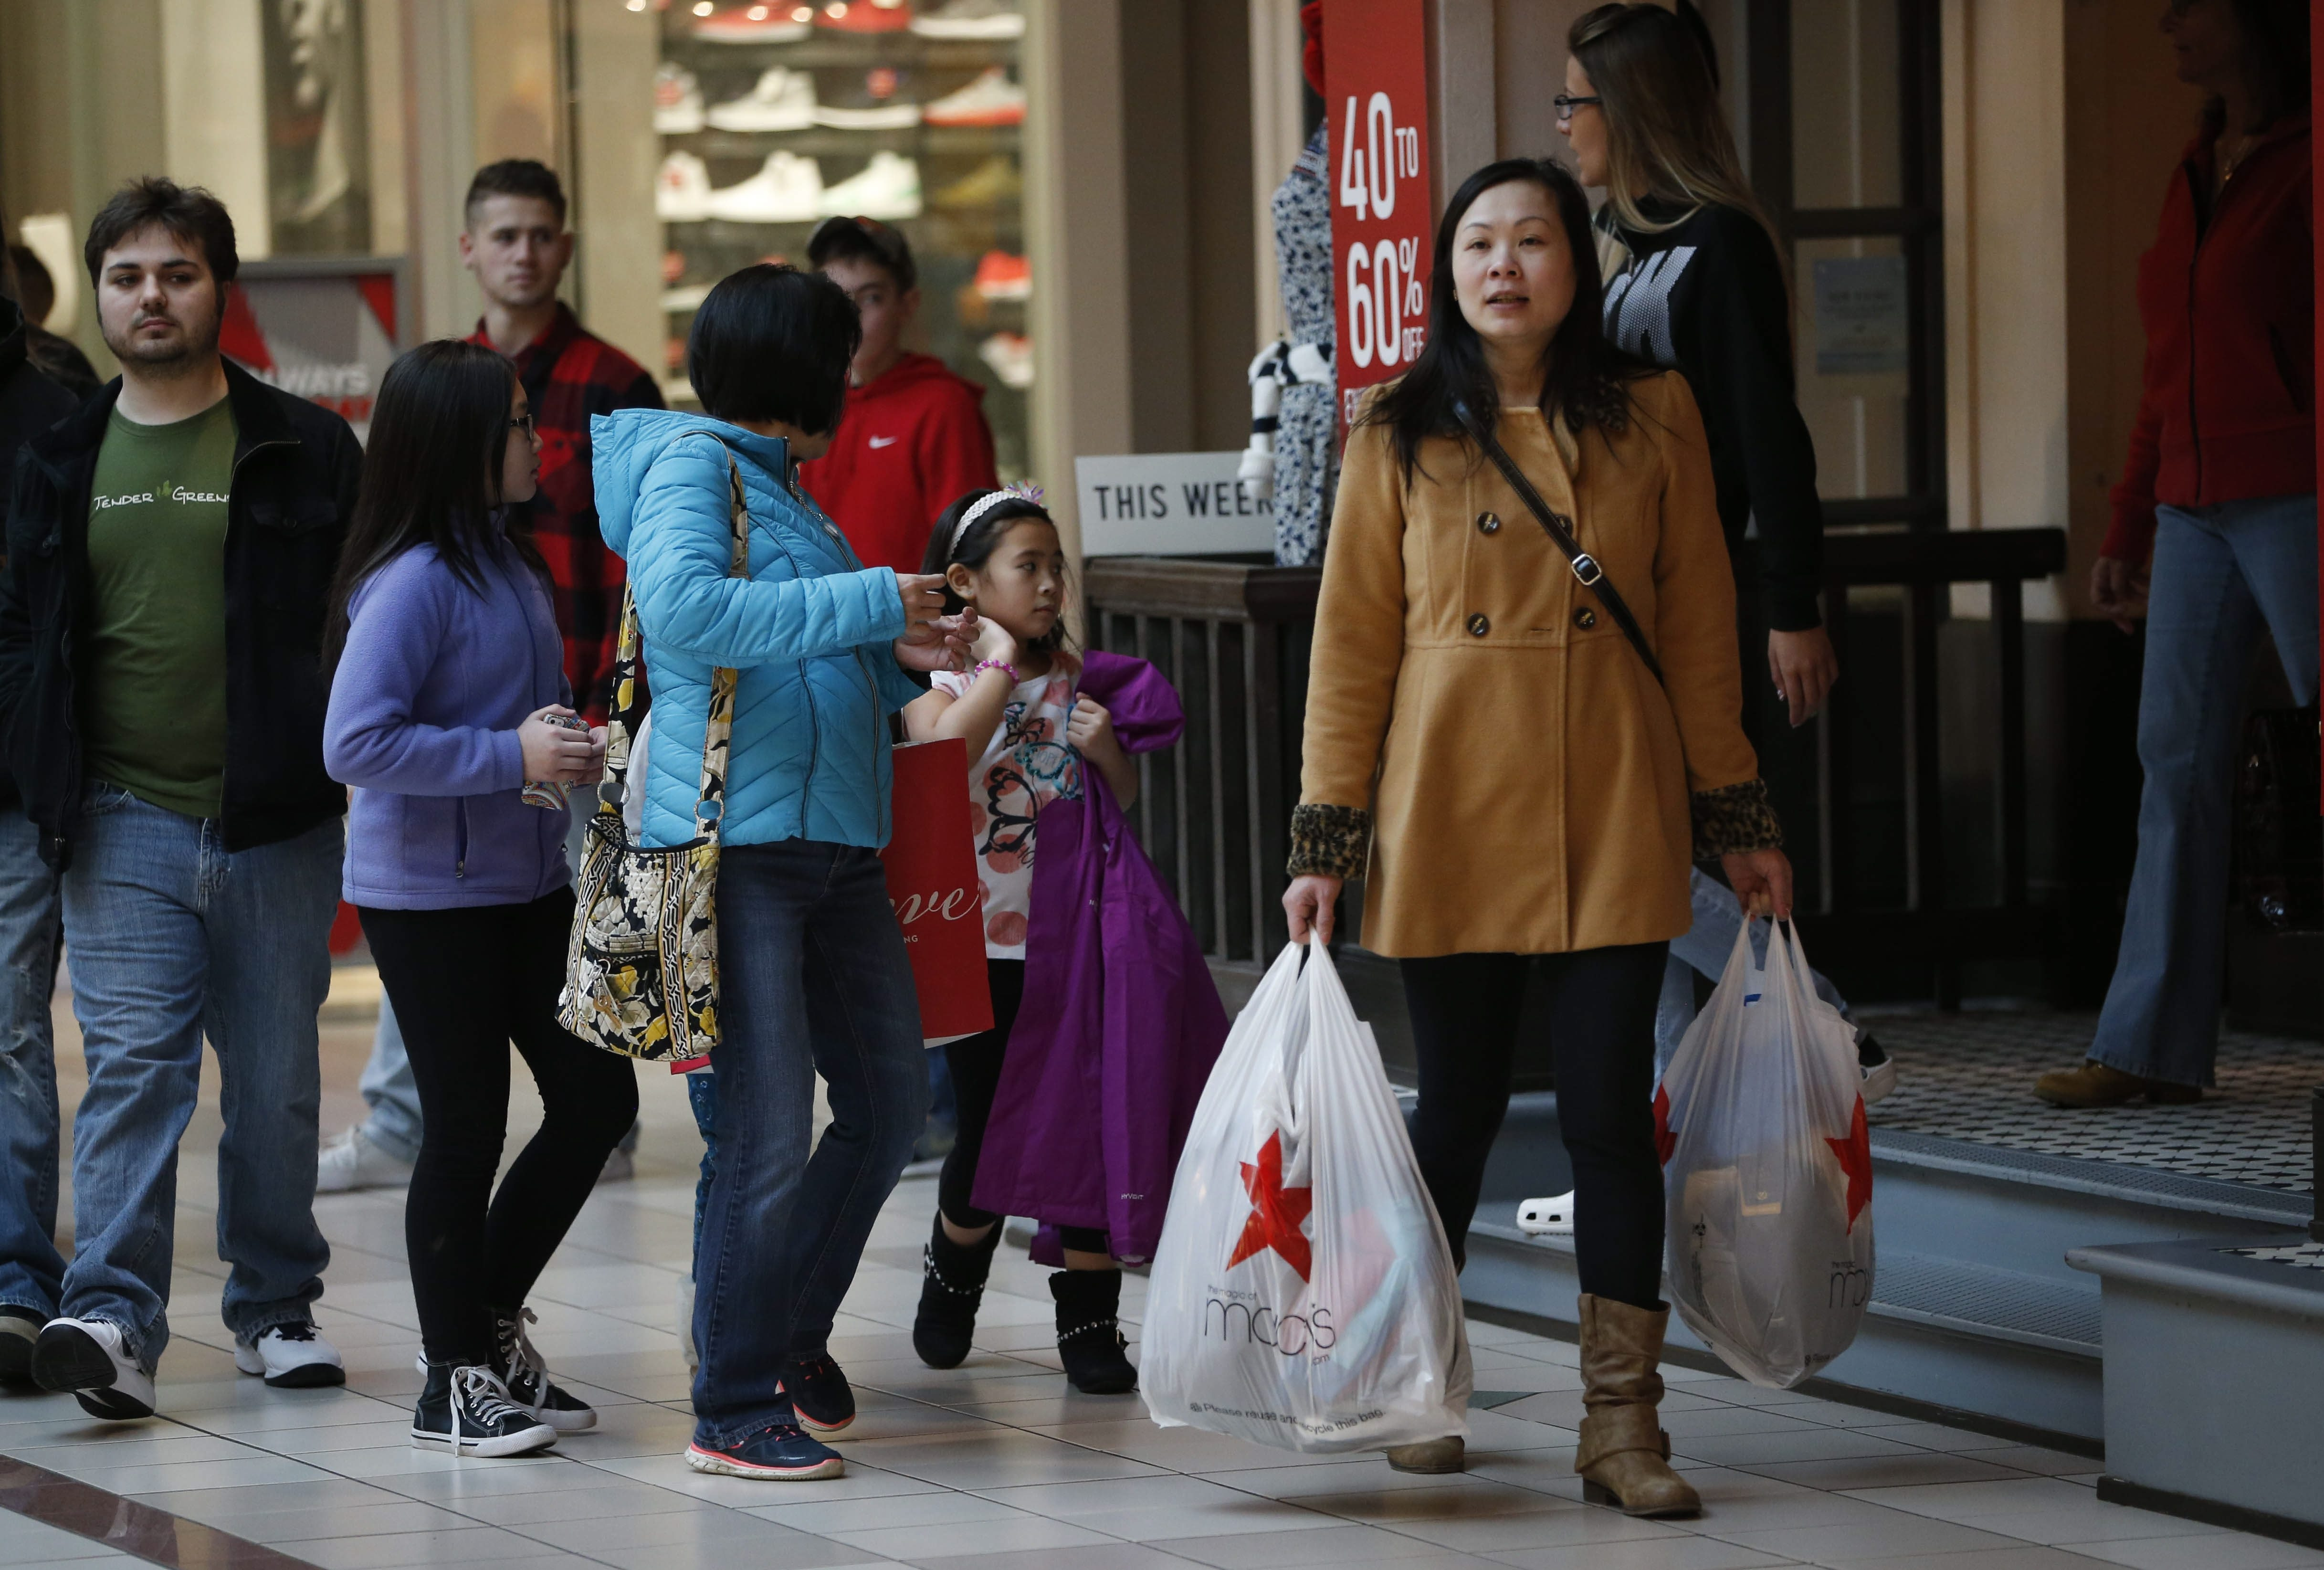 Shoppers return items and search for deals Saturday, the day after Christmas, at the Boulevard Mall